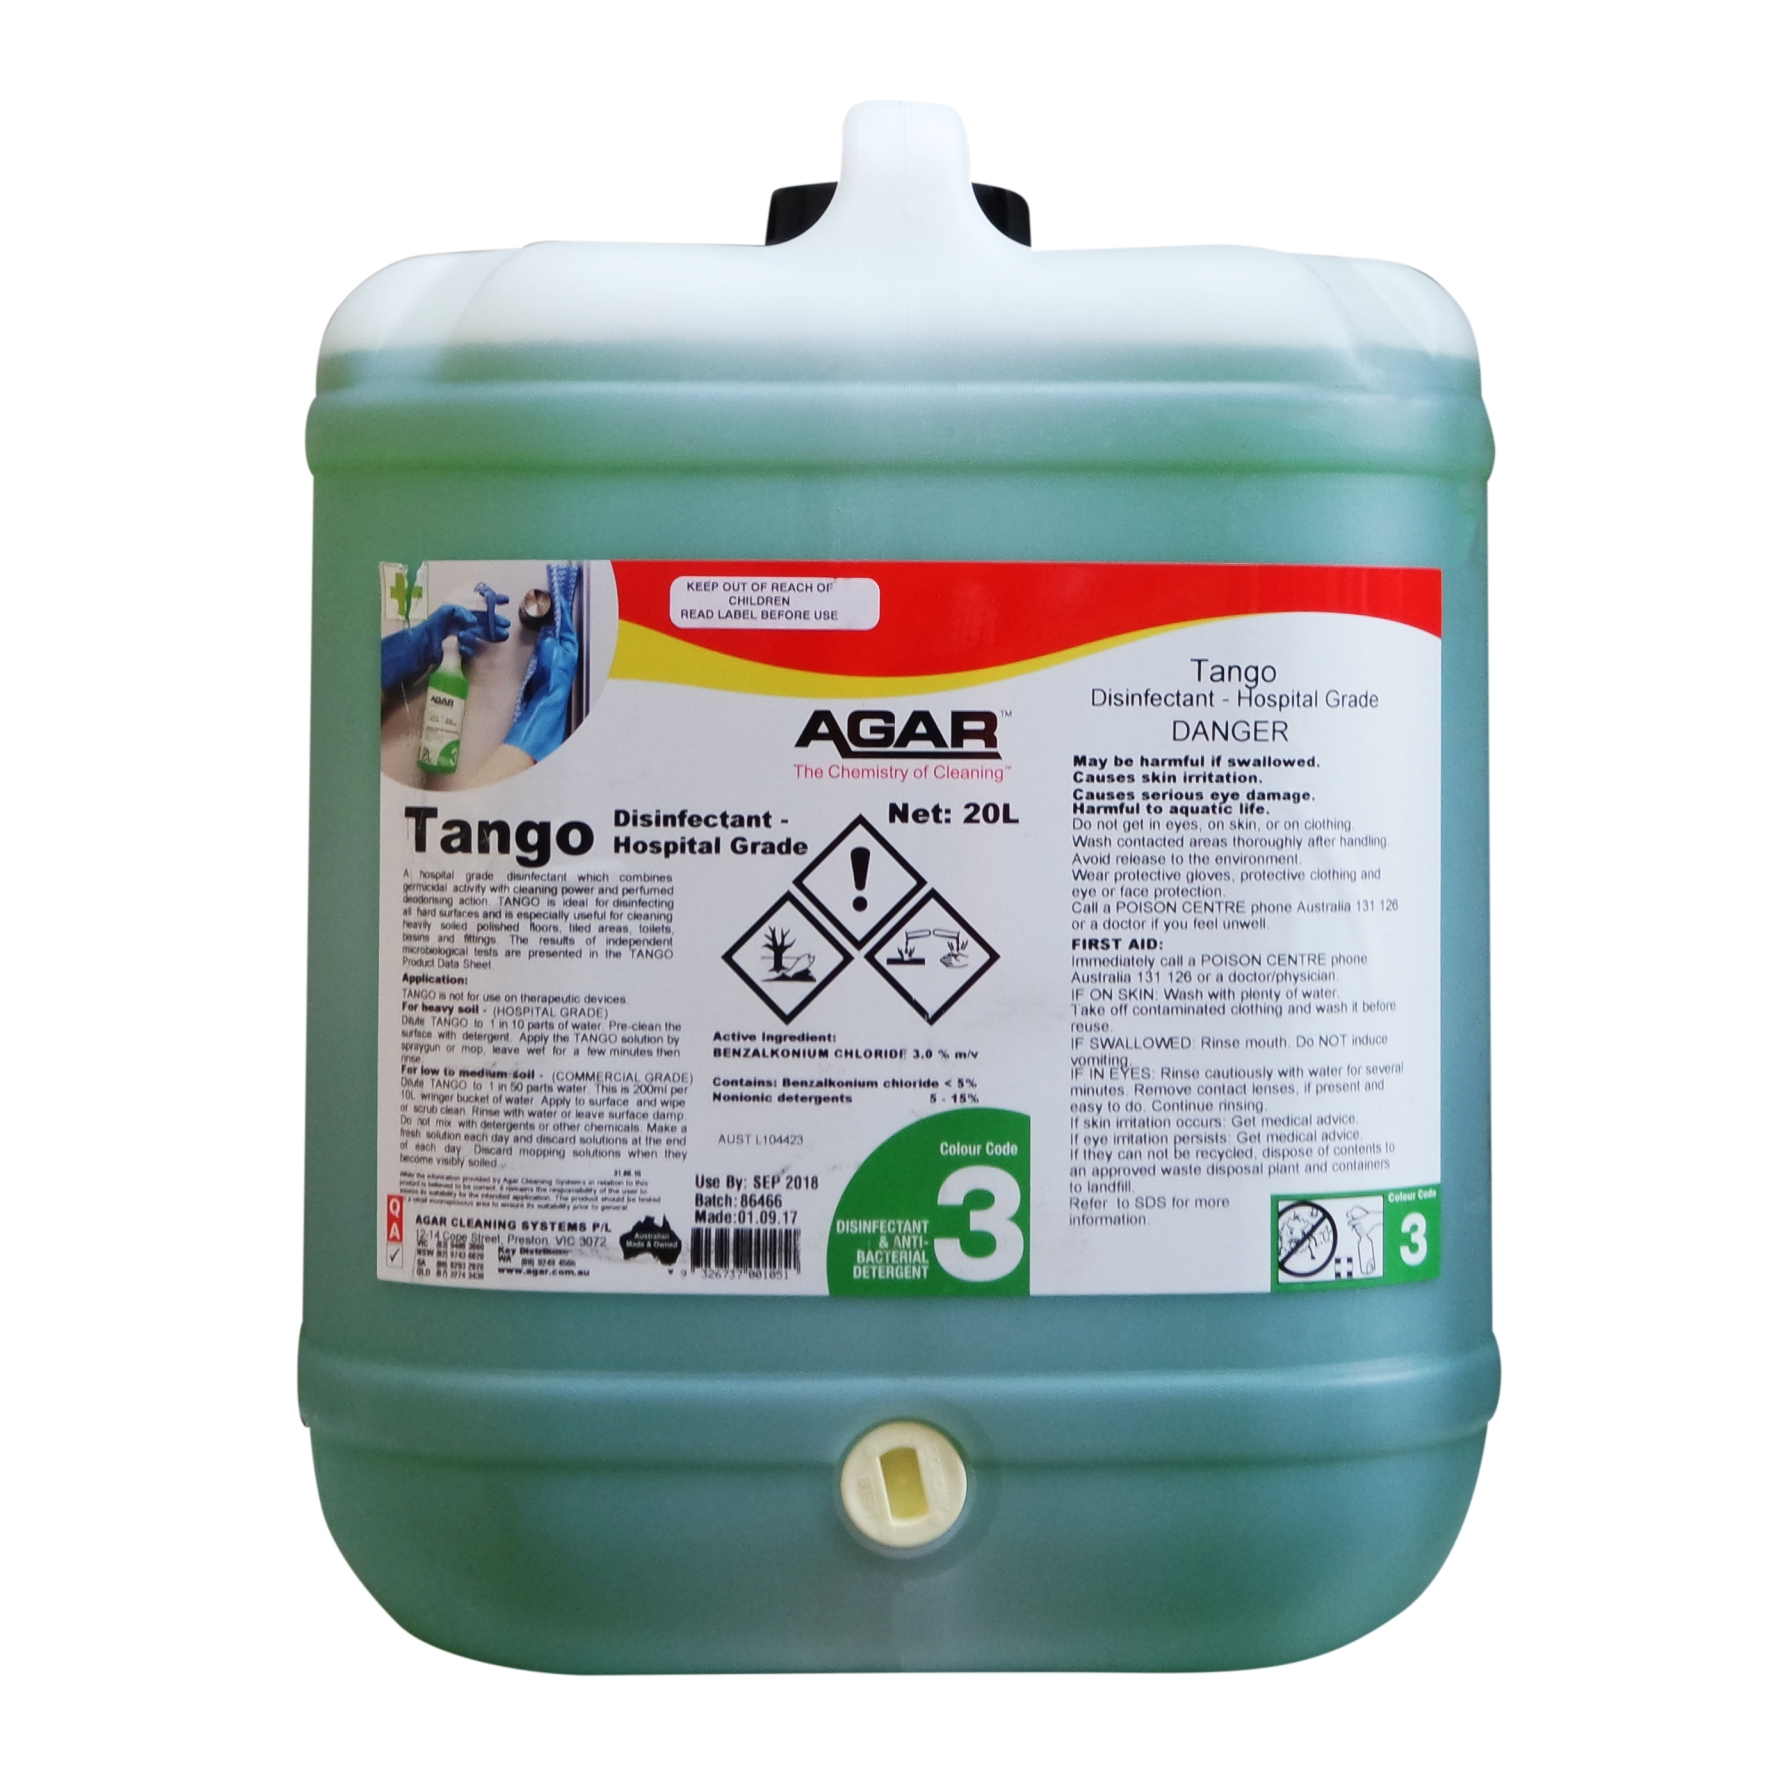 Tango - Hospital Grade Disinfectant | Agar Cleaning Systems